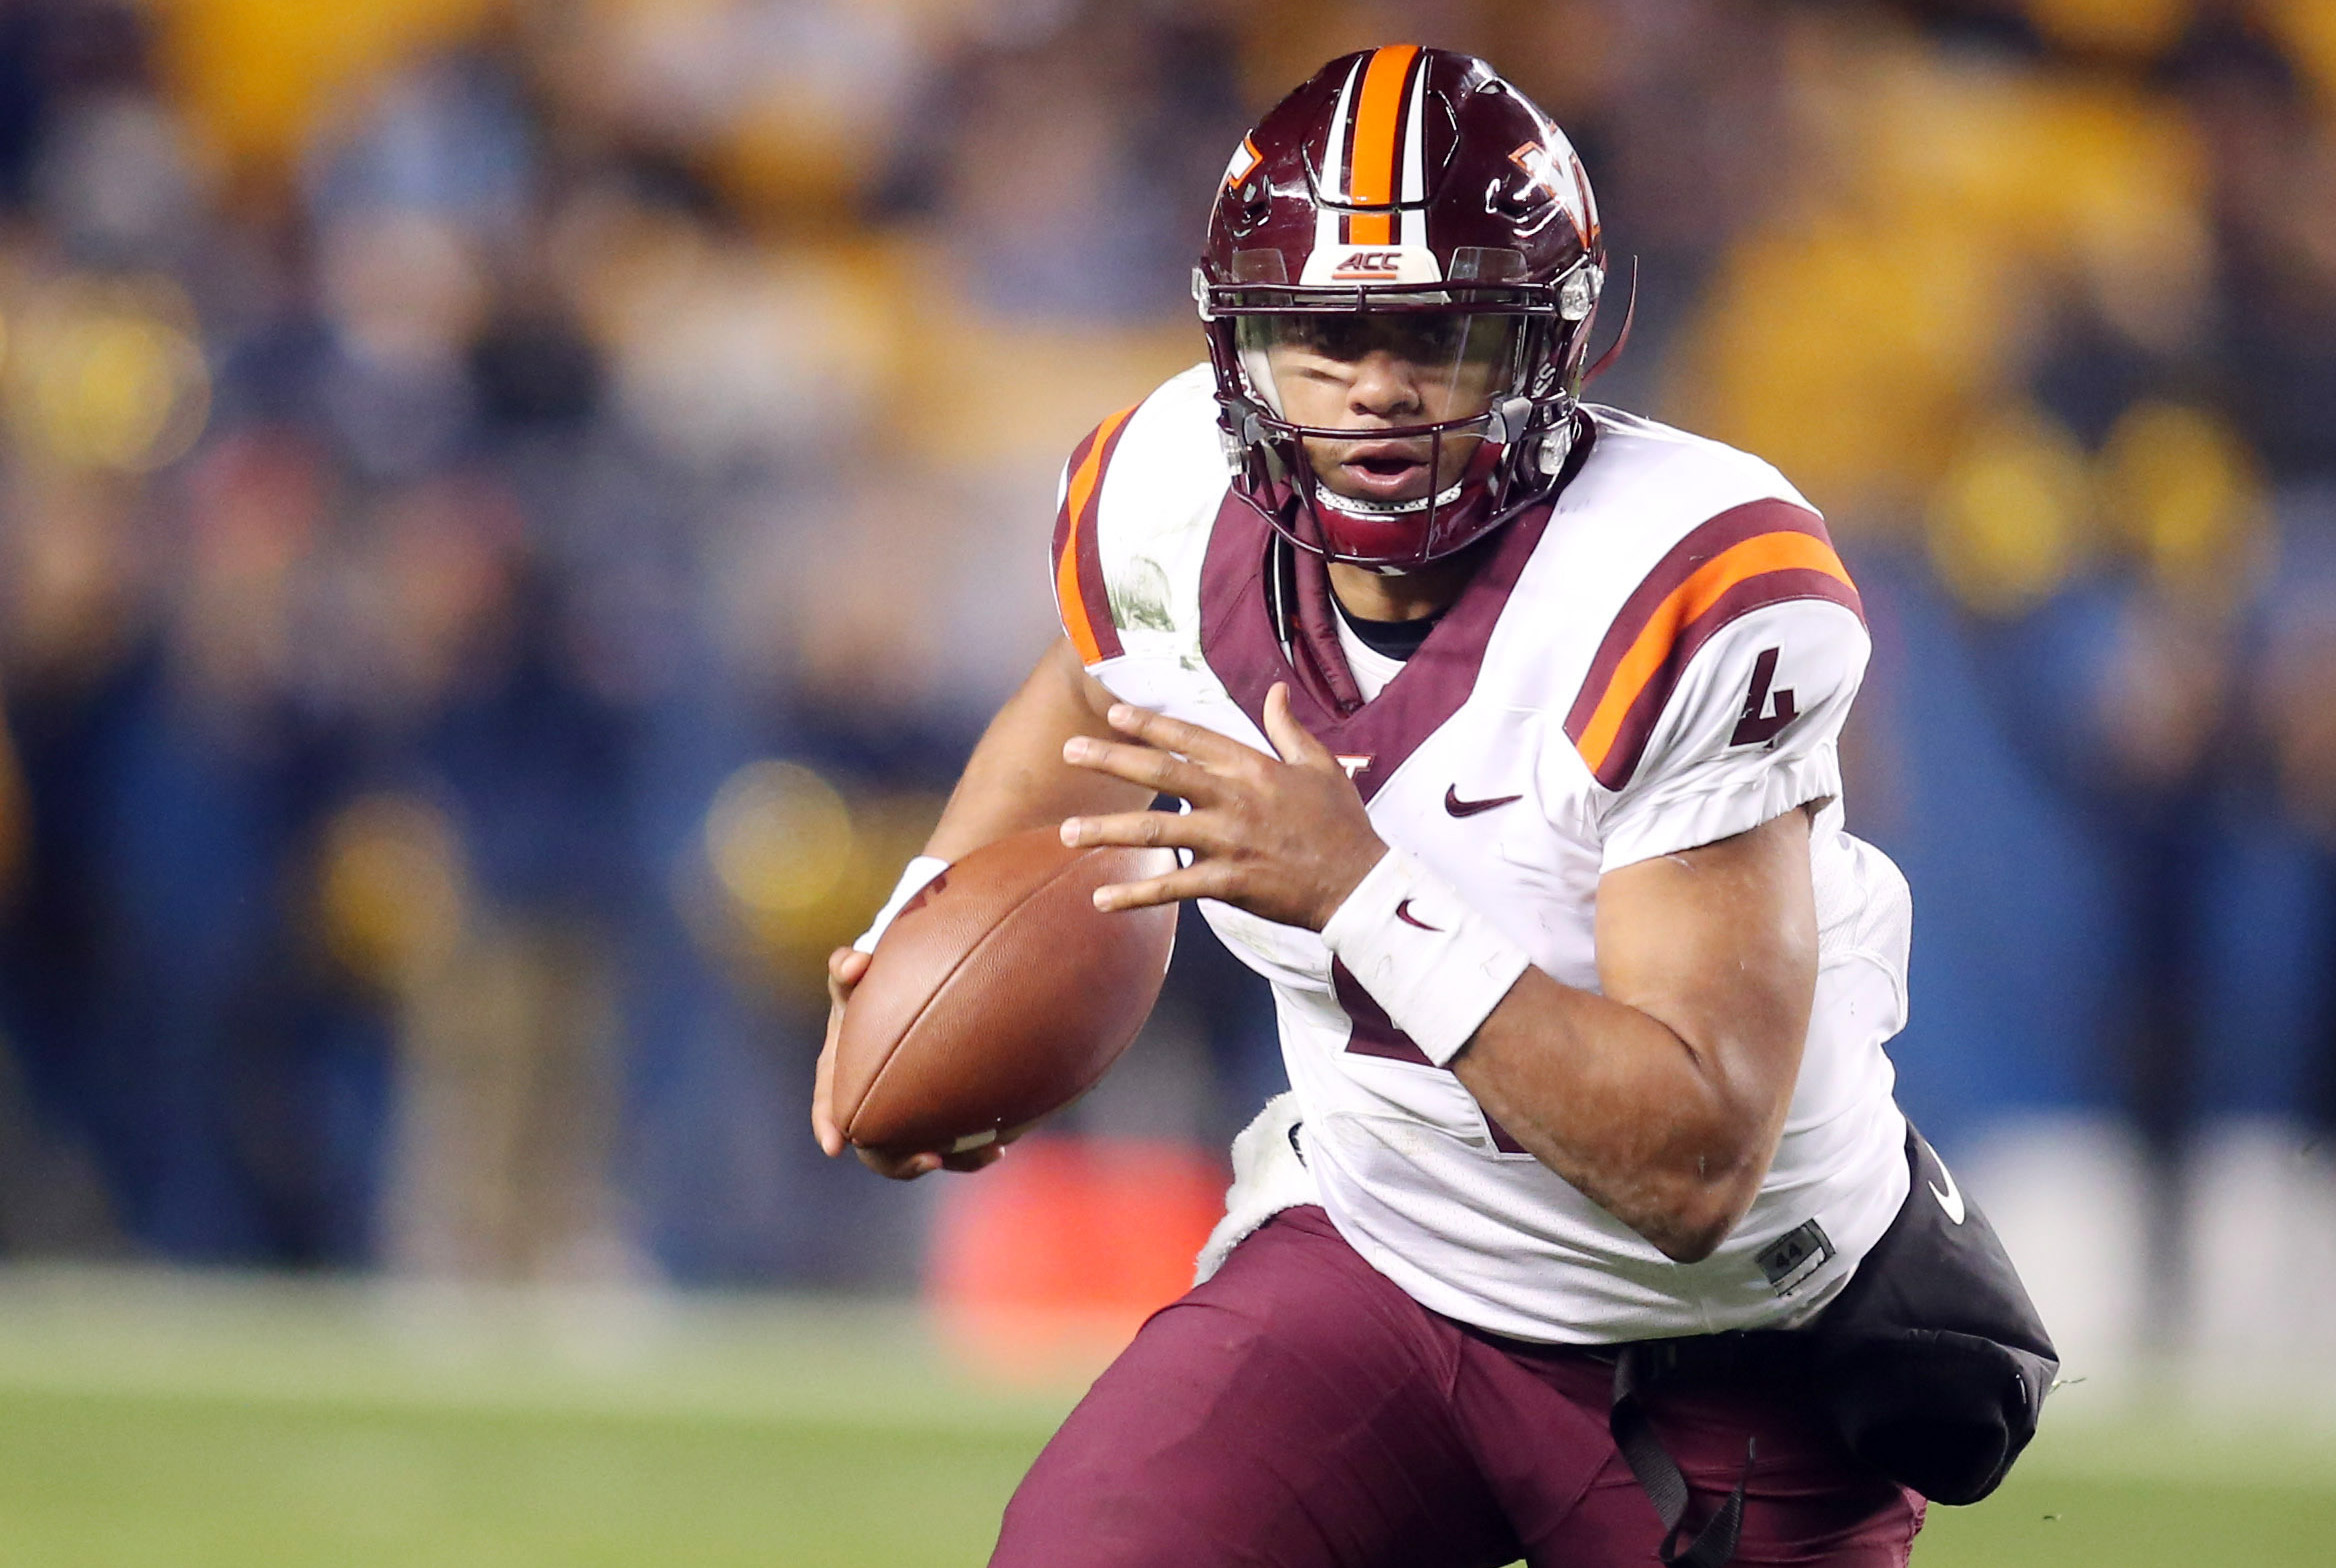 Check out where to live stream the football game between Virginia Tech and Pittsburgh today.